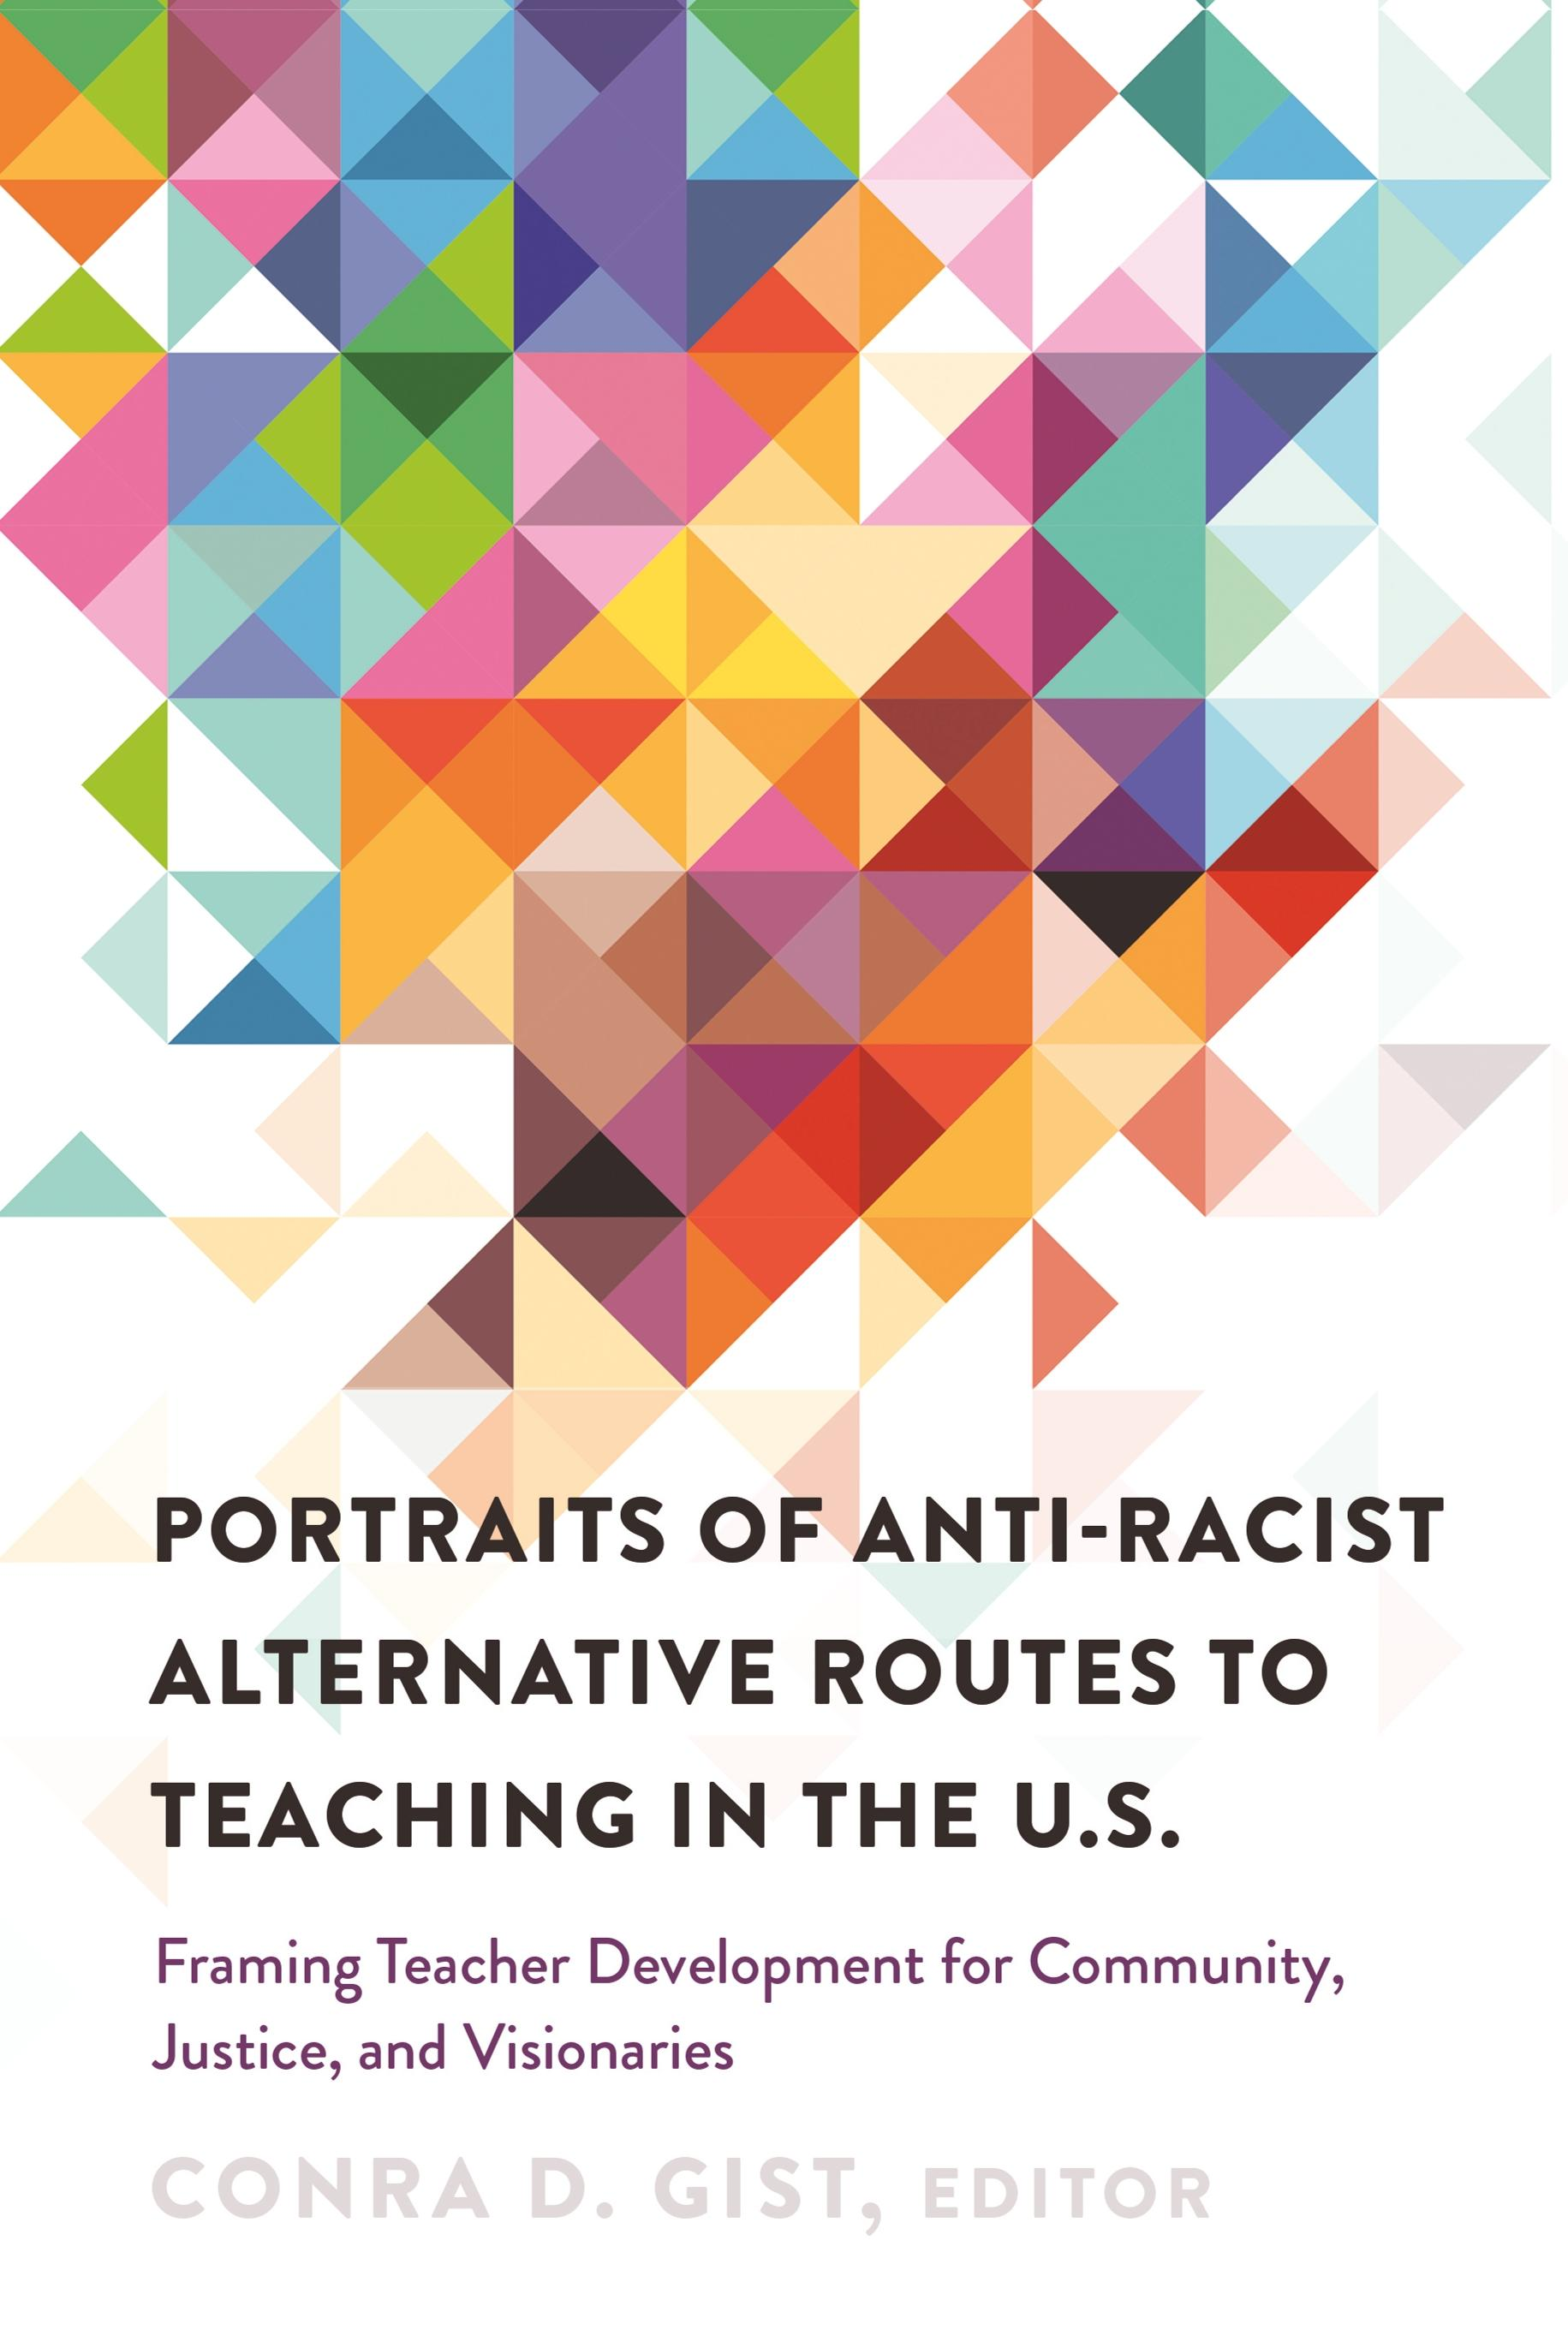 PORTRAITS OF ANTI-RACIST Alternative Routes to Teaching in the U.S. ...